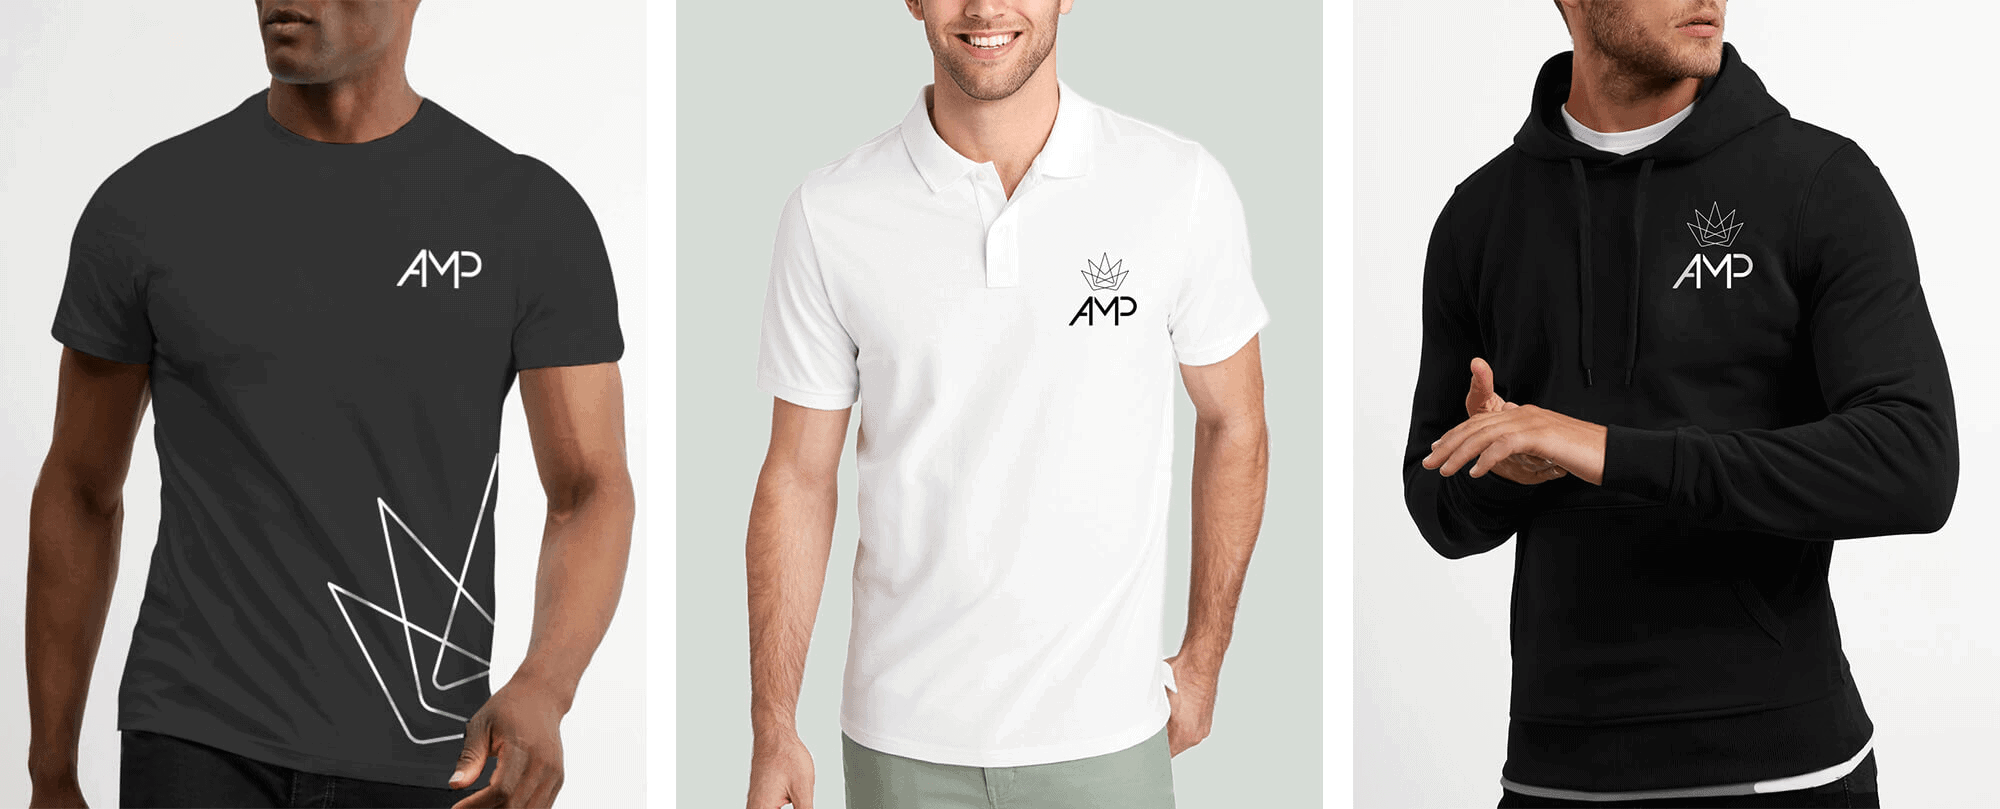 AMP black and white Shirt Polo and Hoodie Apparel